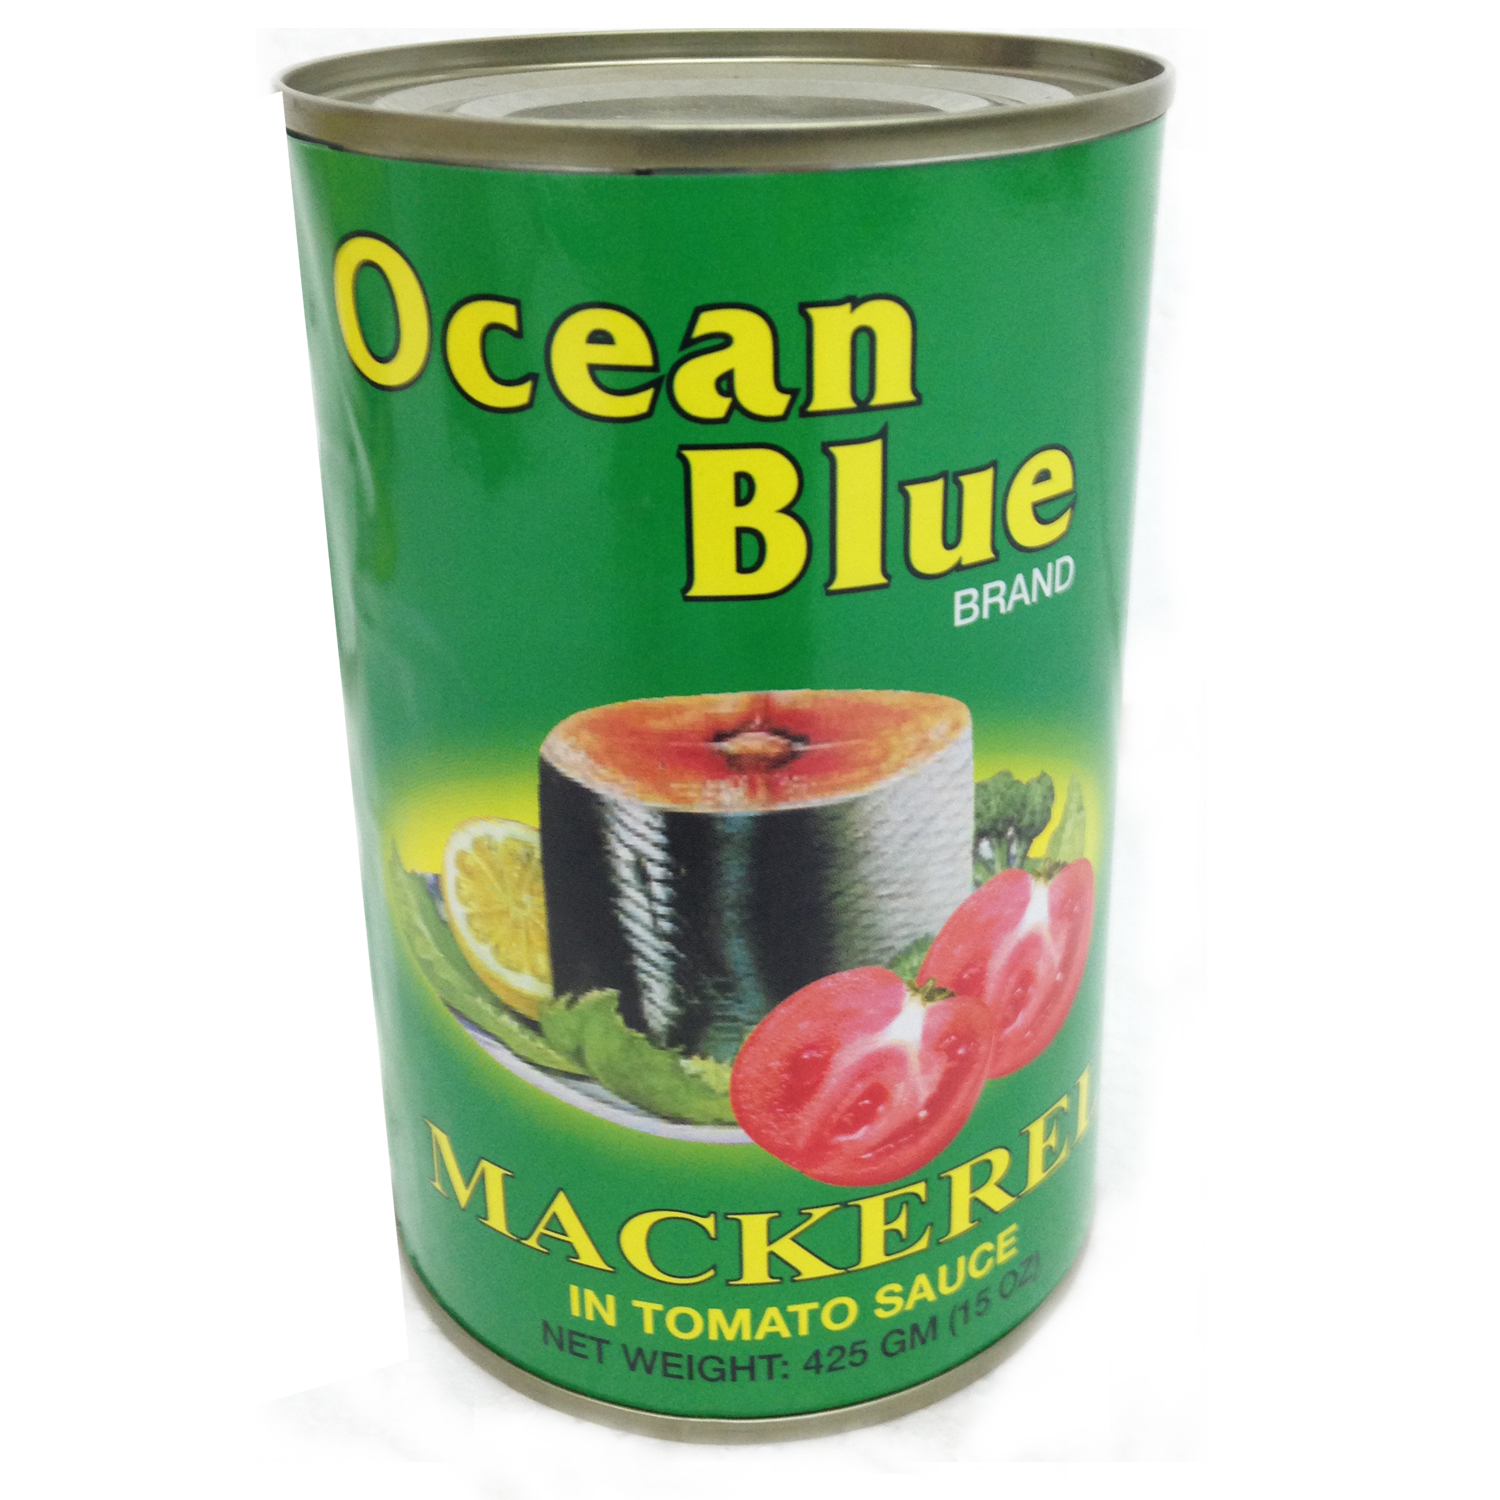 Ocean Blue Mackerel T/Sauce